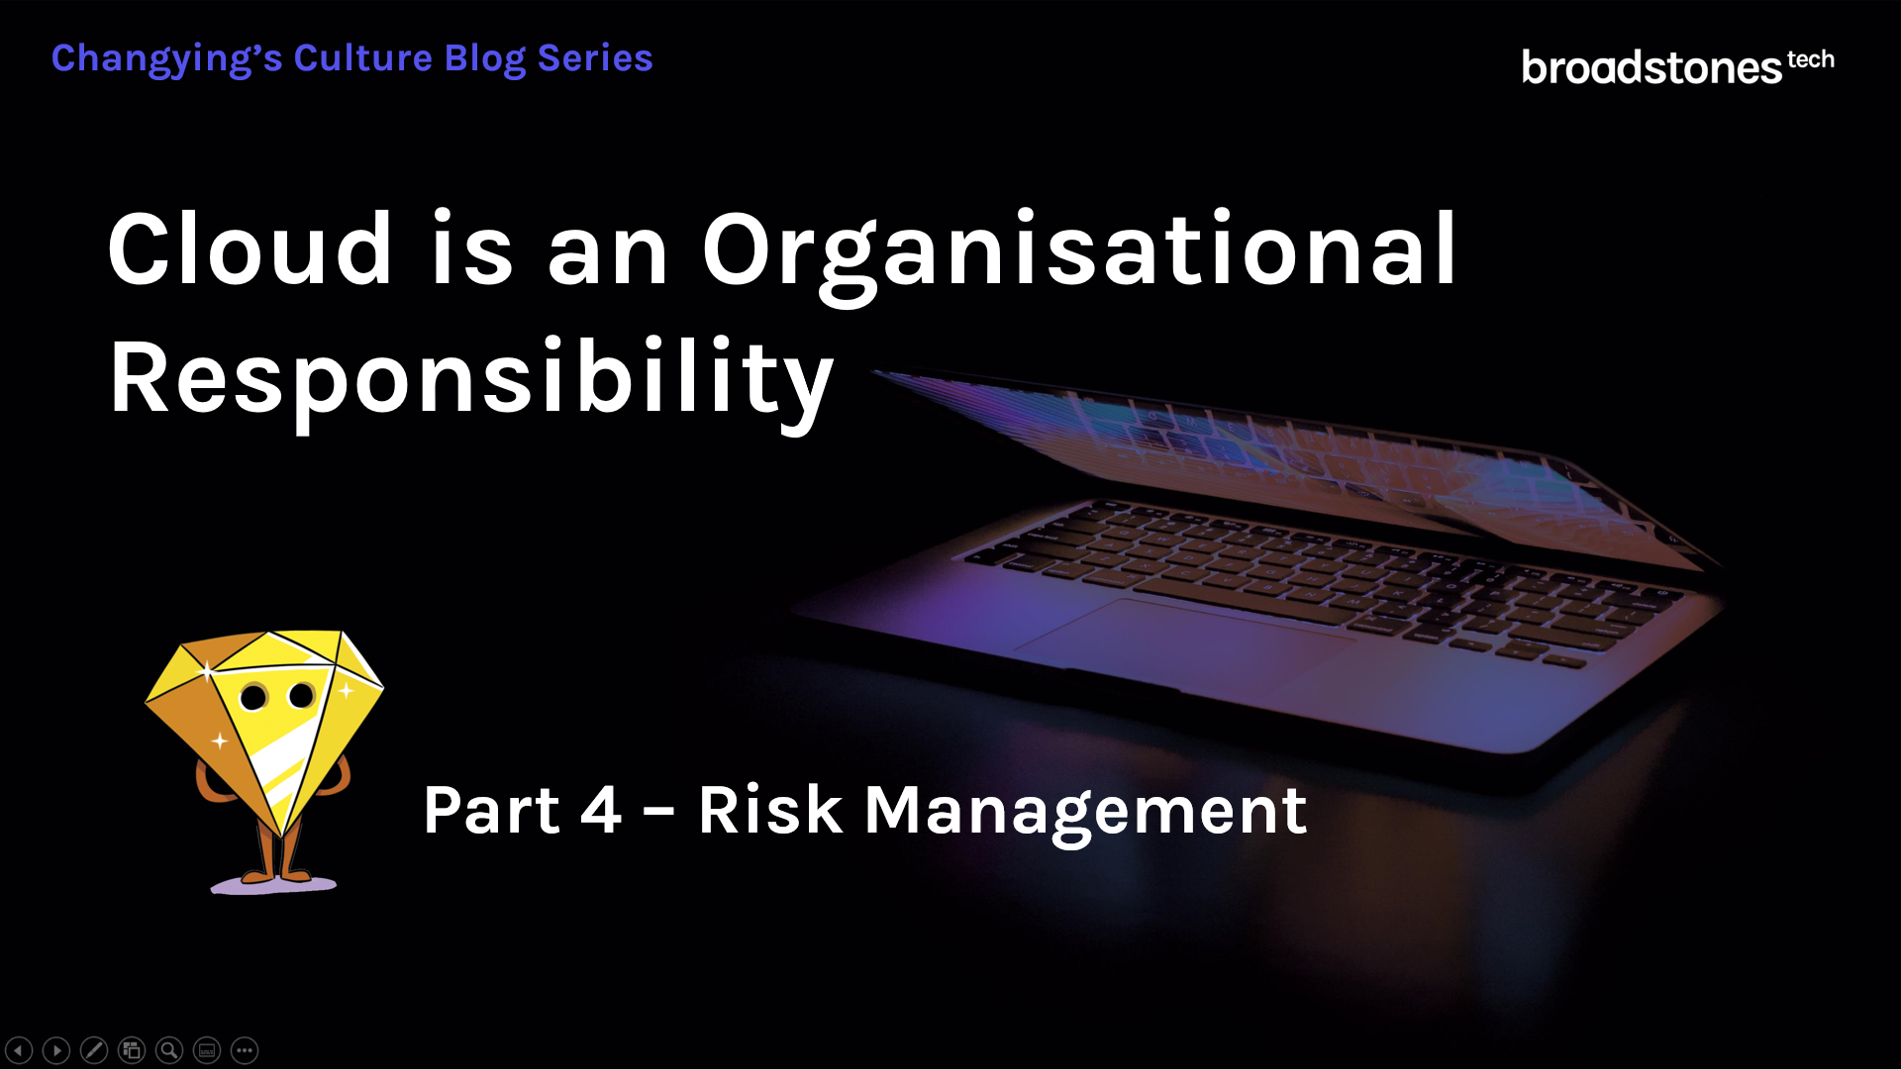 Part 4 of the Cloud is an Organisational Responsibillity - Risk Management